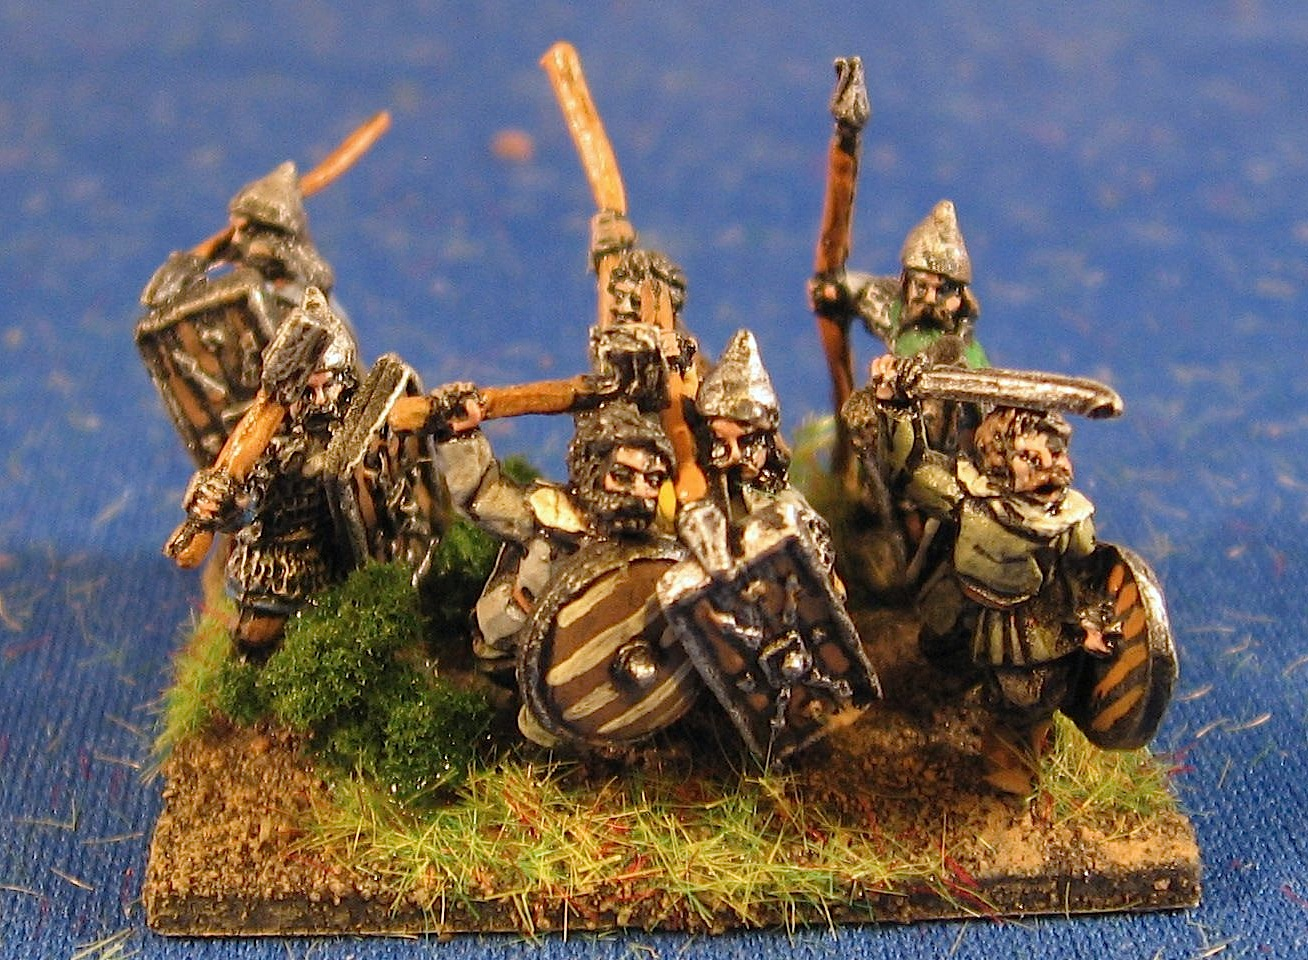 bob u0026 39 s miniature wargaming blog  15mm rus and early rus armies